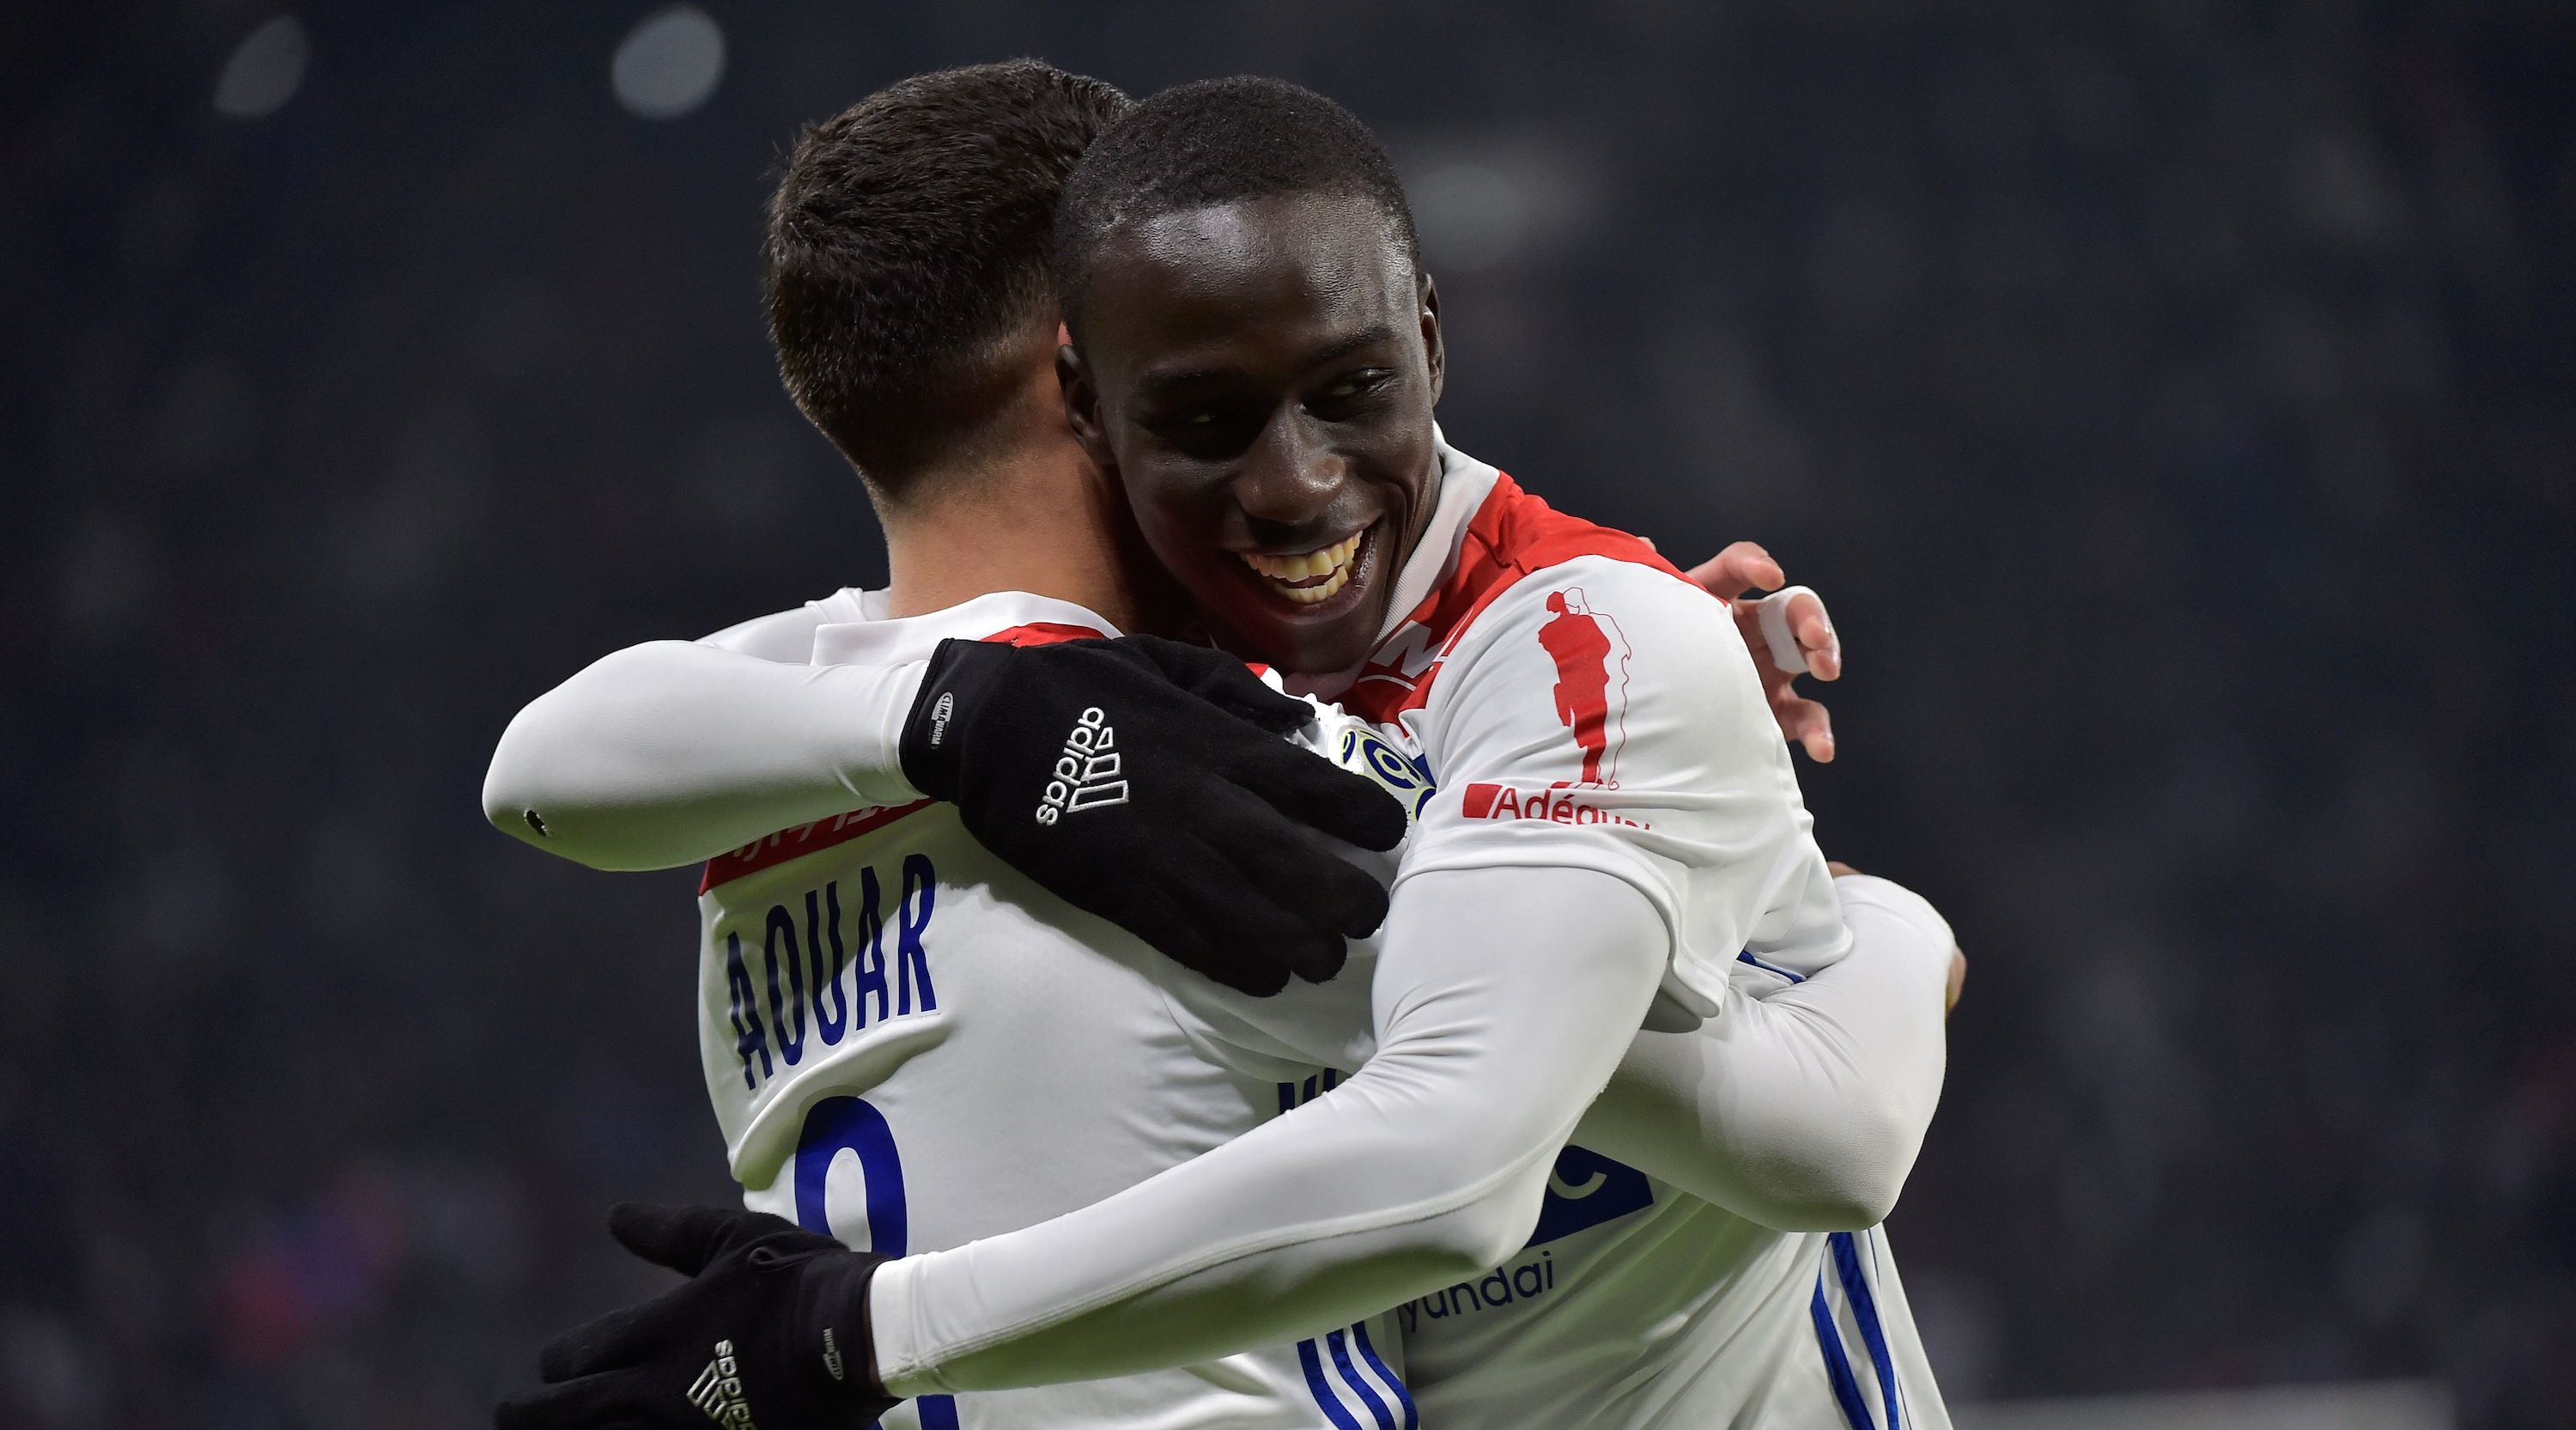 Lyon's French midfielder Houssem Aouar (L) celebrates after scoring a goal with Lyon's French defender Ferland Mendy (R) during the French L1 football match between Lyon (OL) and Monaco (ASM) on December 16, 2018, at the Groupama Stadium in Decines-Charpieu near Lyon, central-eastern France. (Photo by ROMAIN LAFABREGUE / AFP) (Photo credit should read ROMAIN LAFABREGUE/AFP/Getty Images)